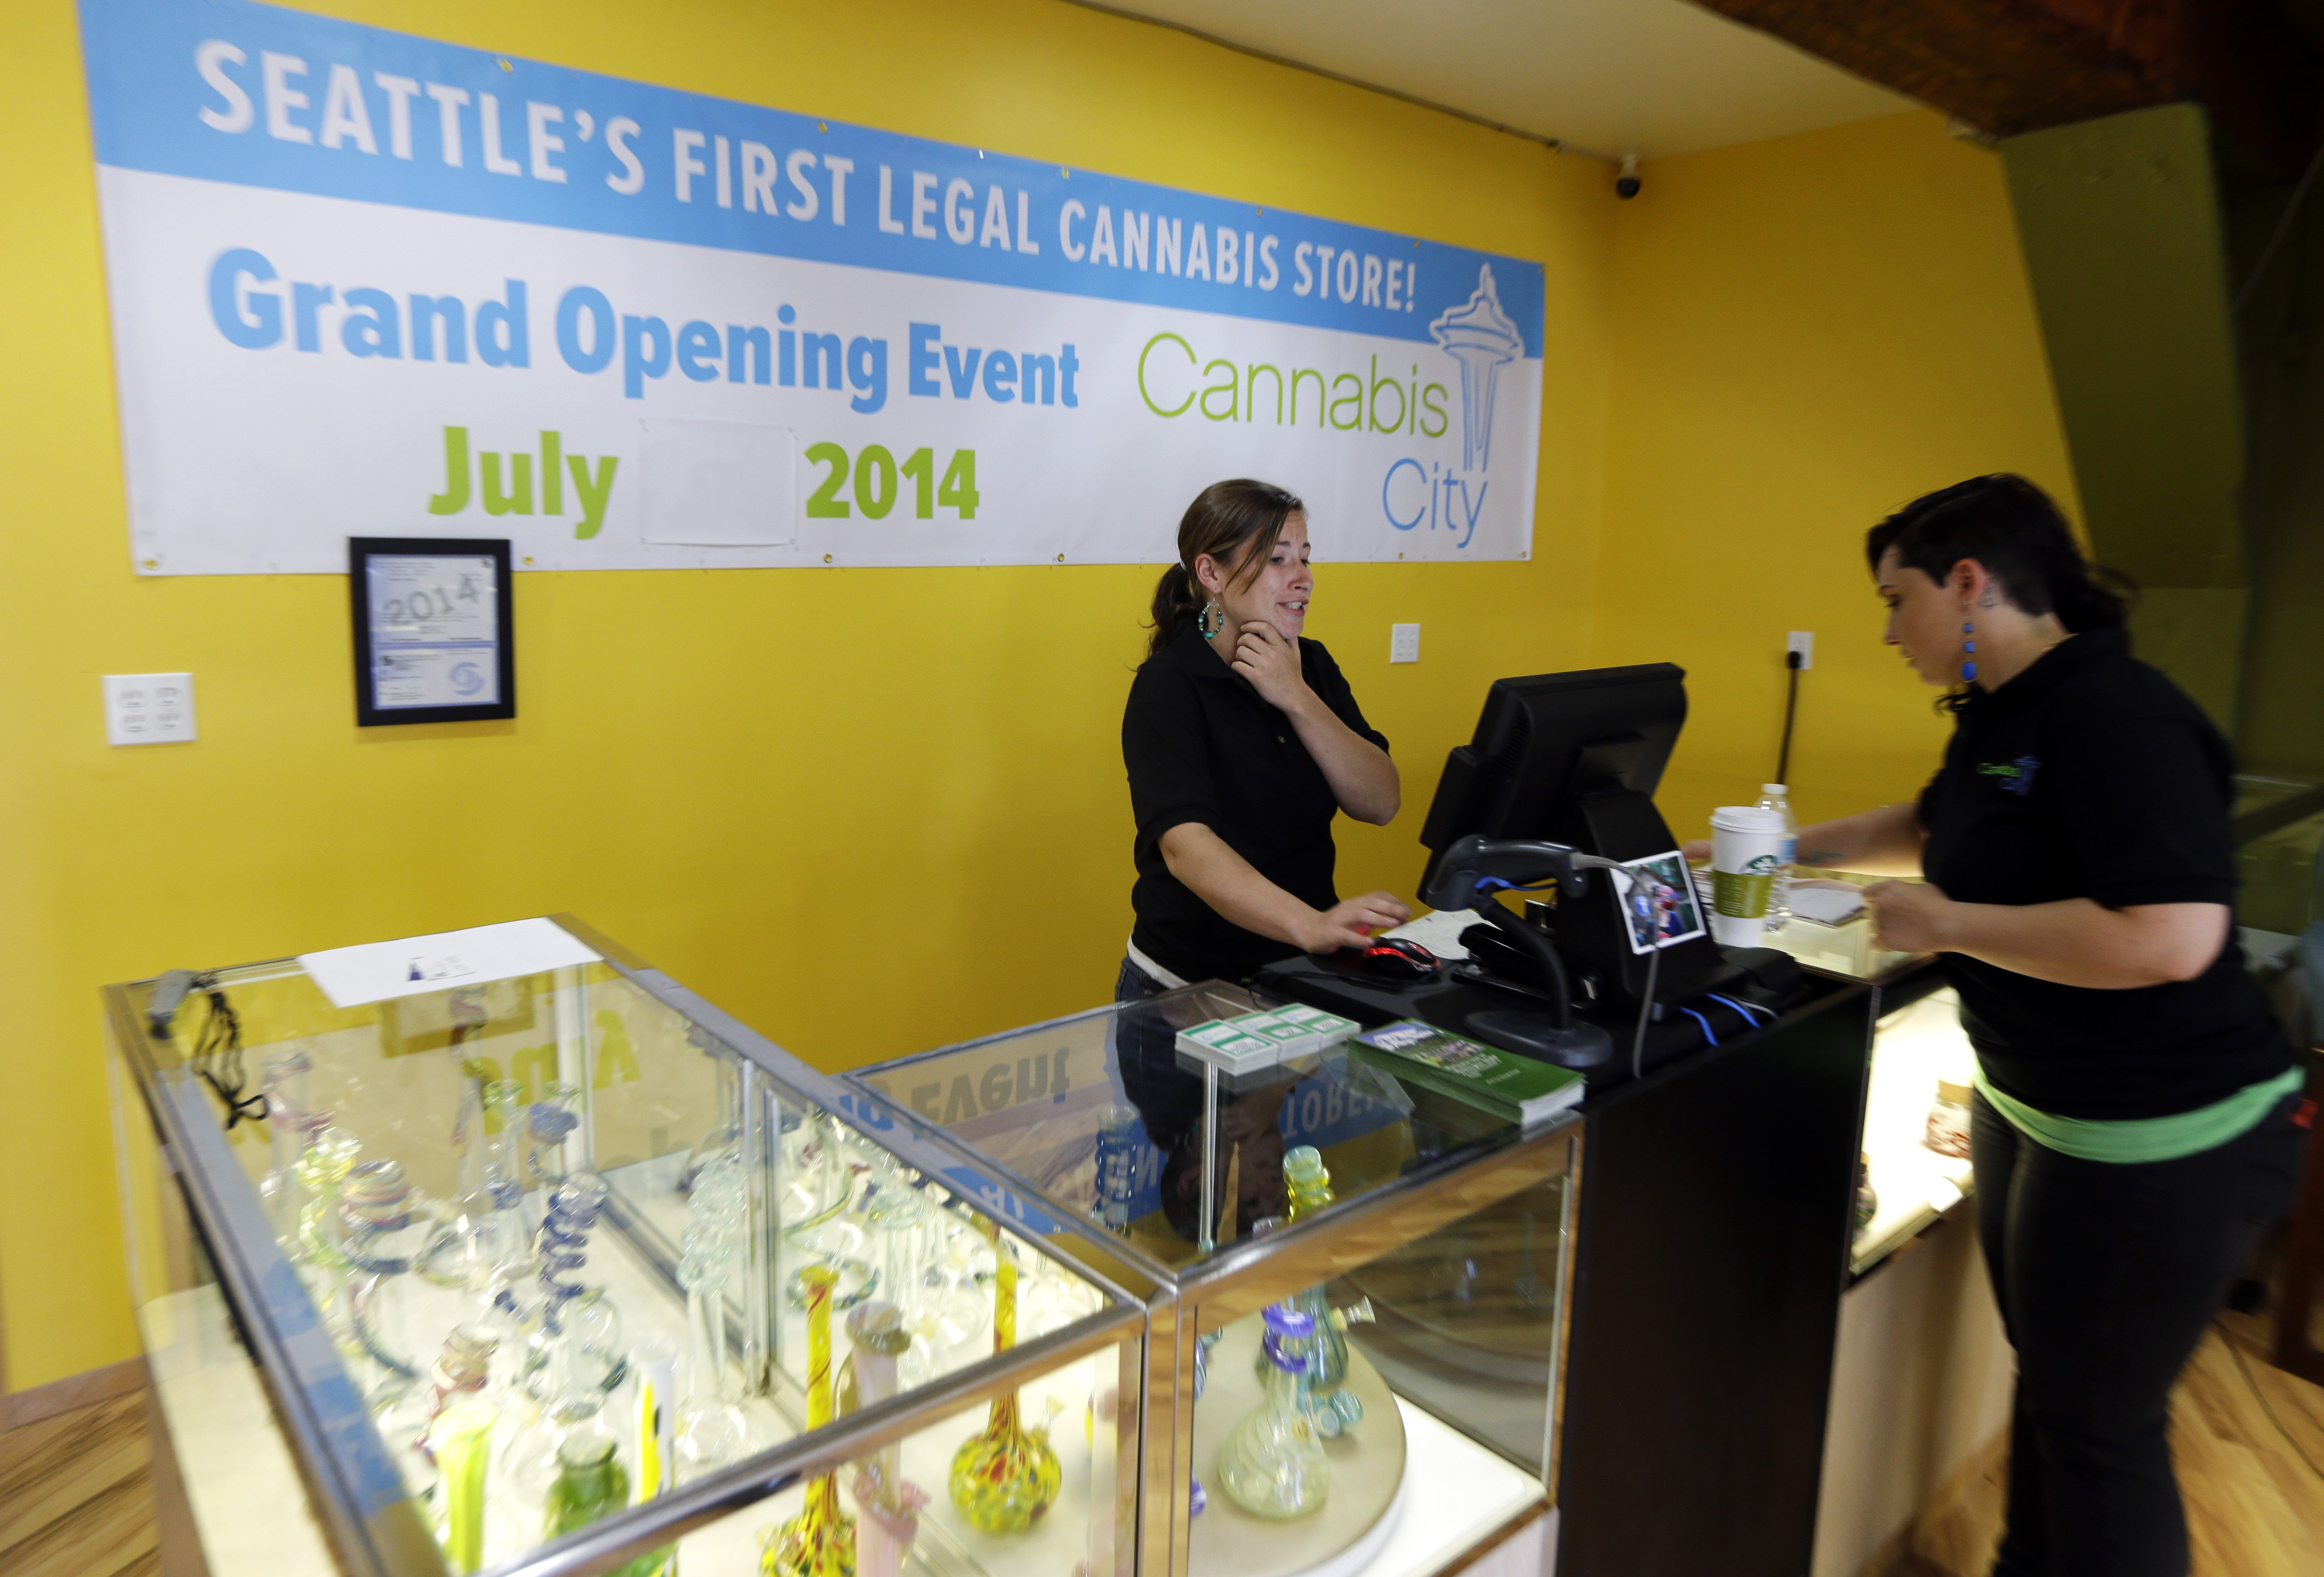 Amber McGowan, right, and Krystal Klacsan, left, work in the cash register area at the recreational marijuana store Cannabis City in Seattle on July 7, 2014.